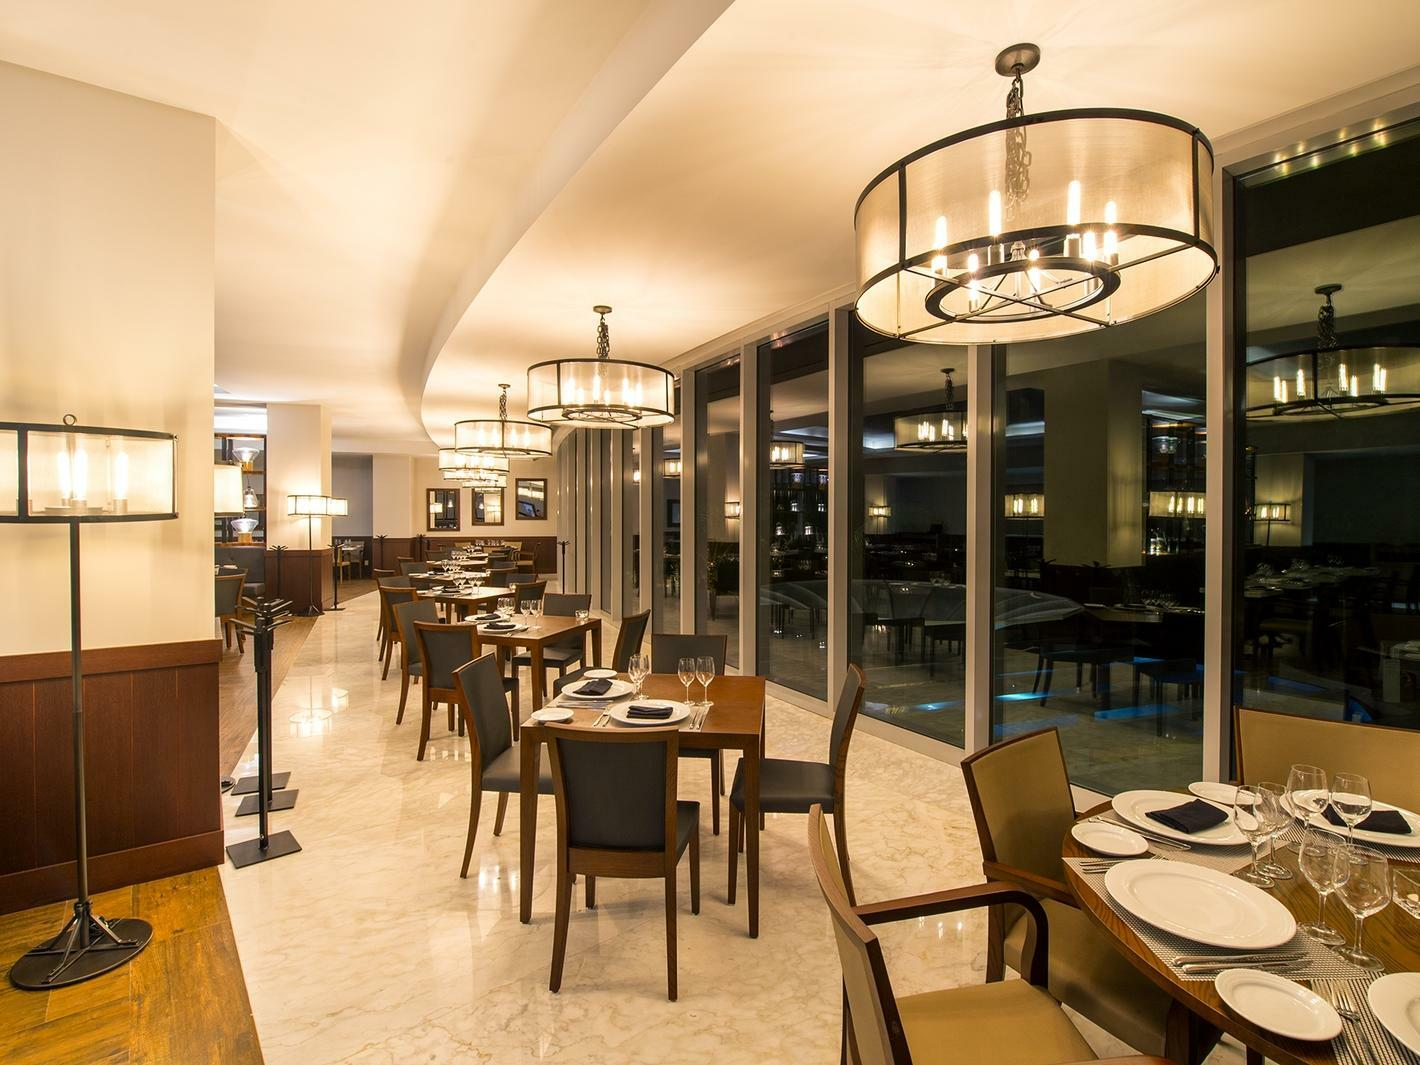 Restaurant dining room with floor to ceiling windows at Gulietta at Grand Fiesta Americana Puerto Vallarta All Inclusive Adults Only